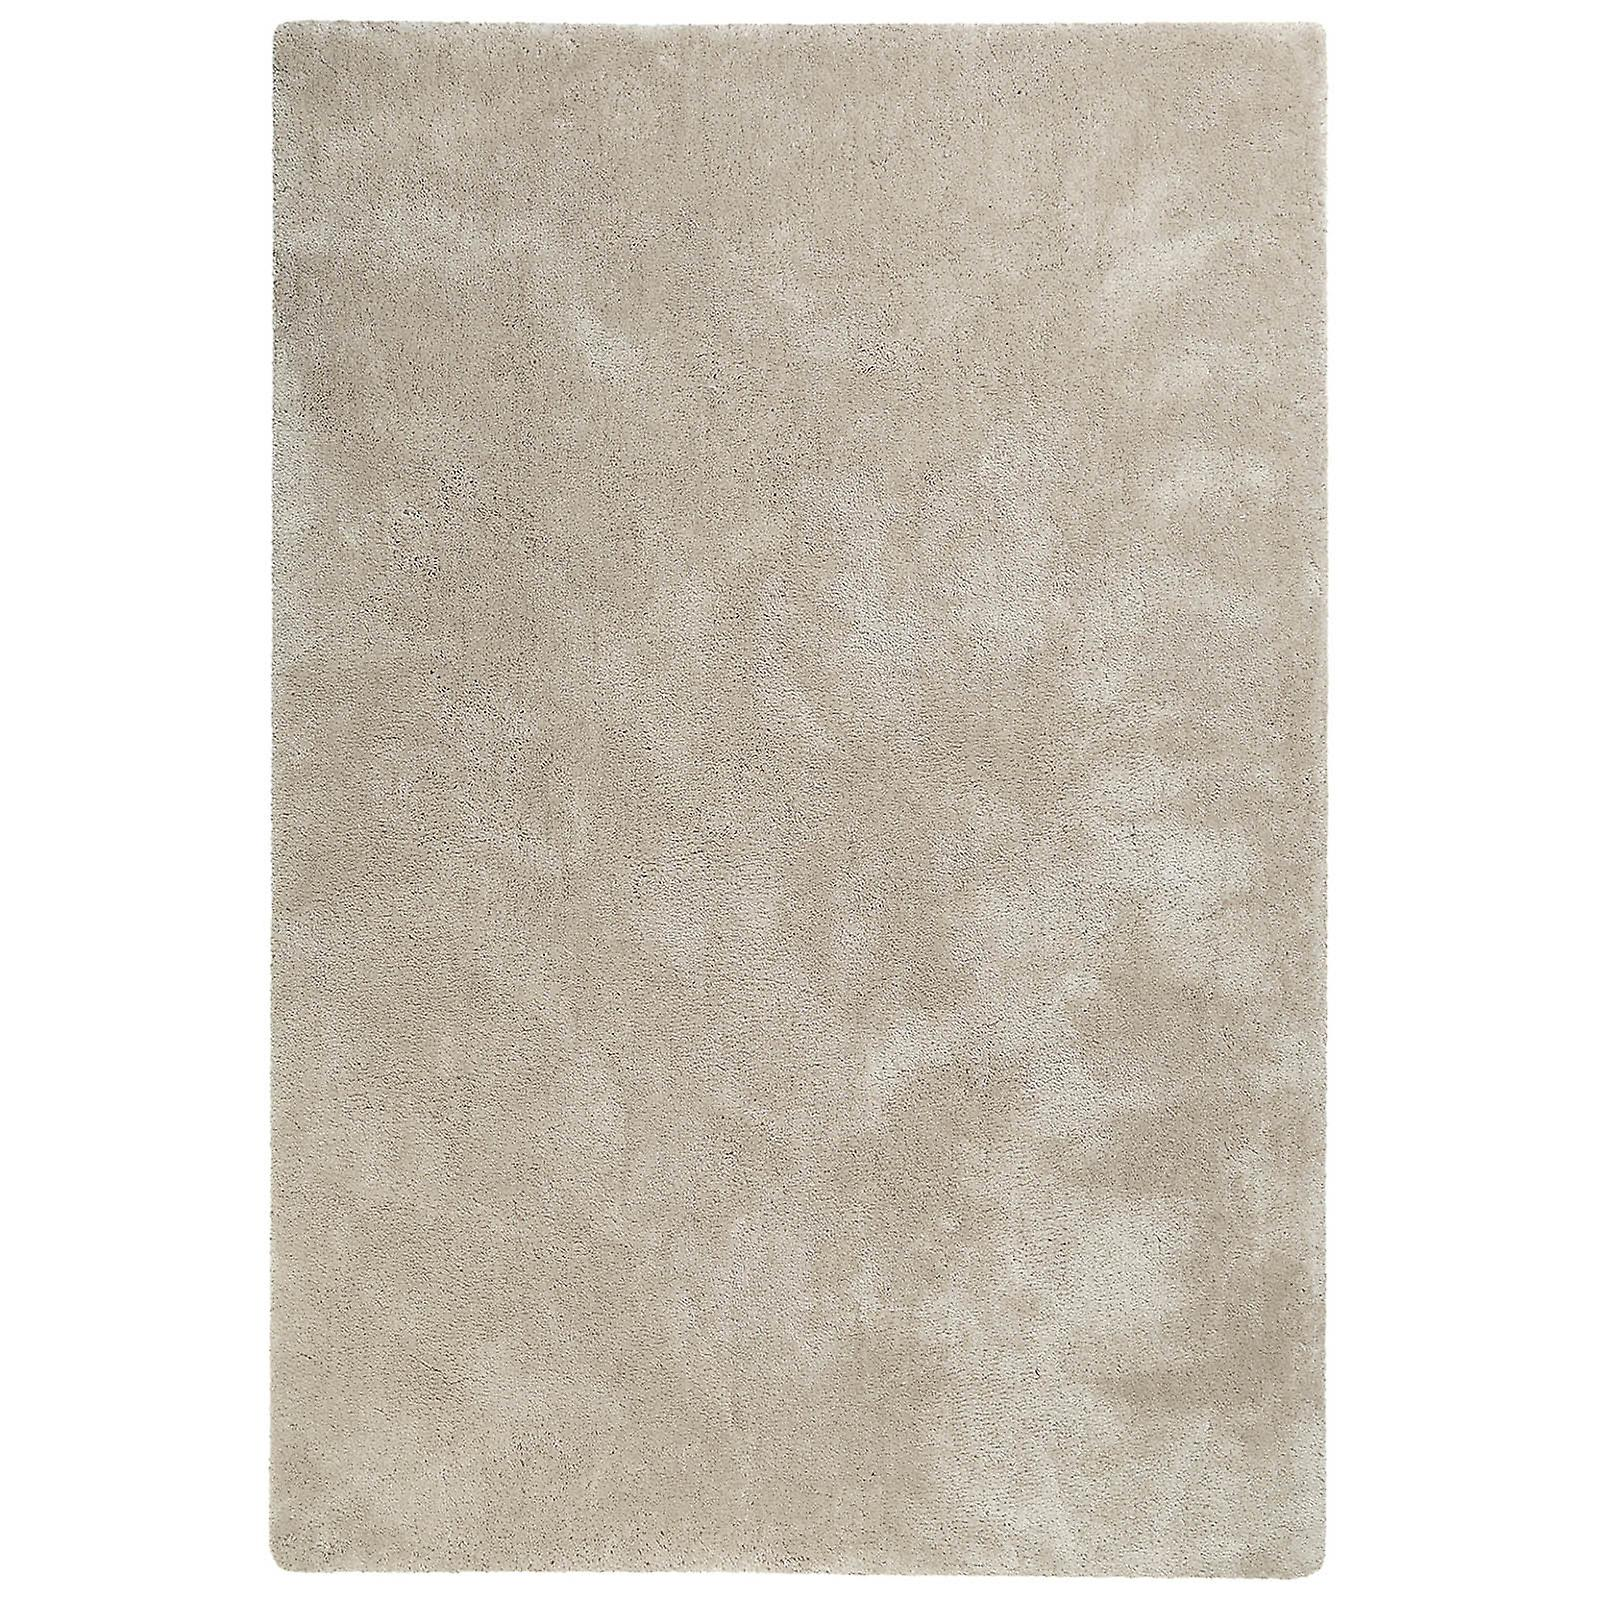 Relaxx Rugs 4150 04 By Esprit In Taupe